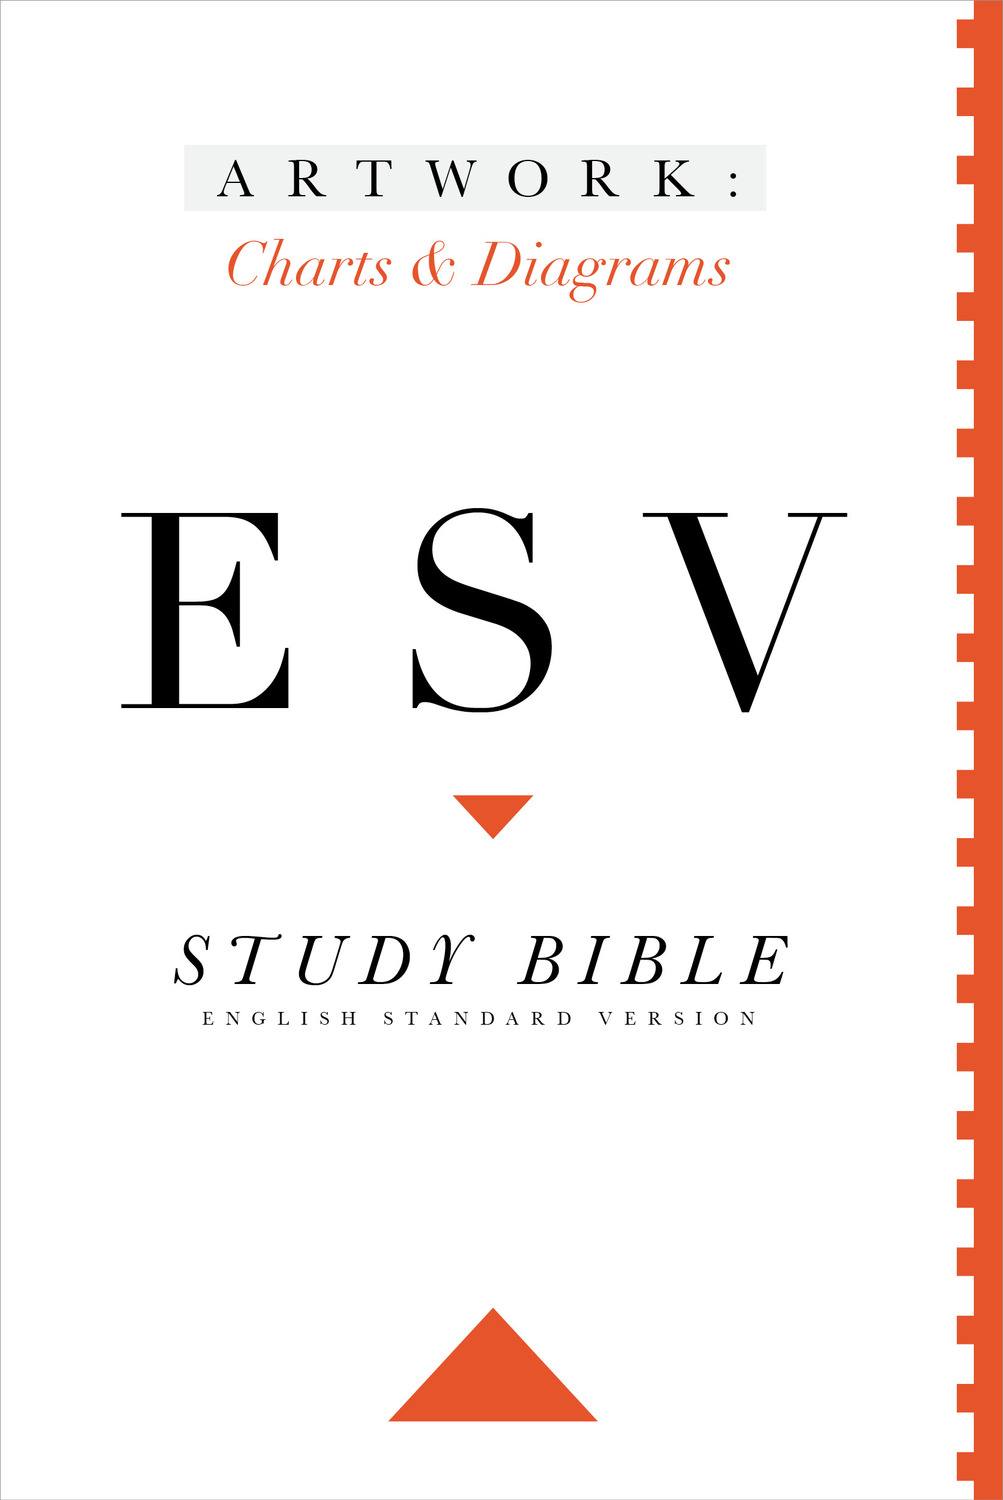 ESV Study Bible Artwork: Charts and Diagrams